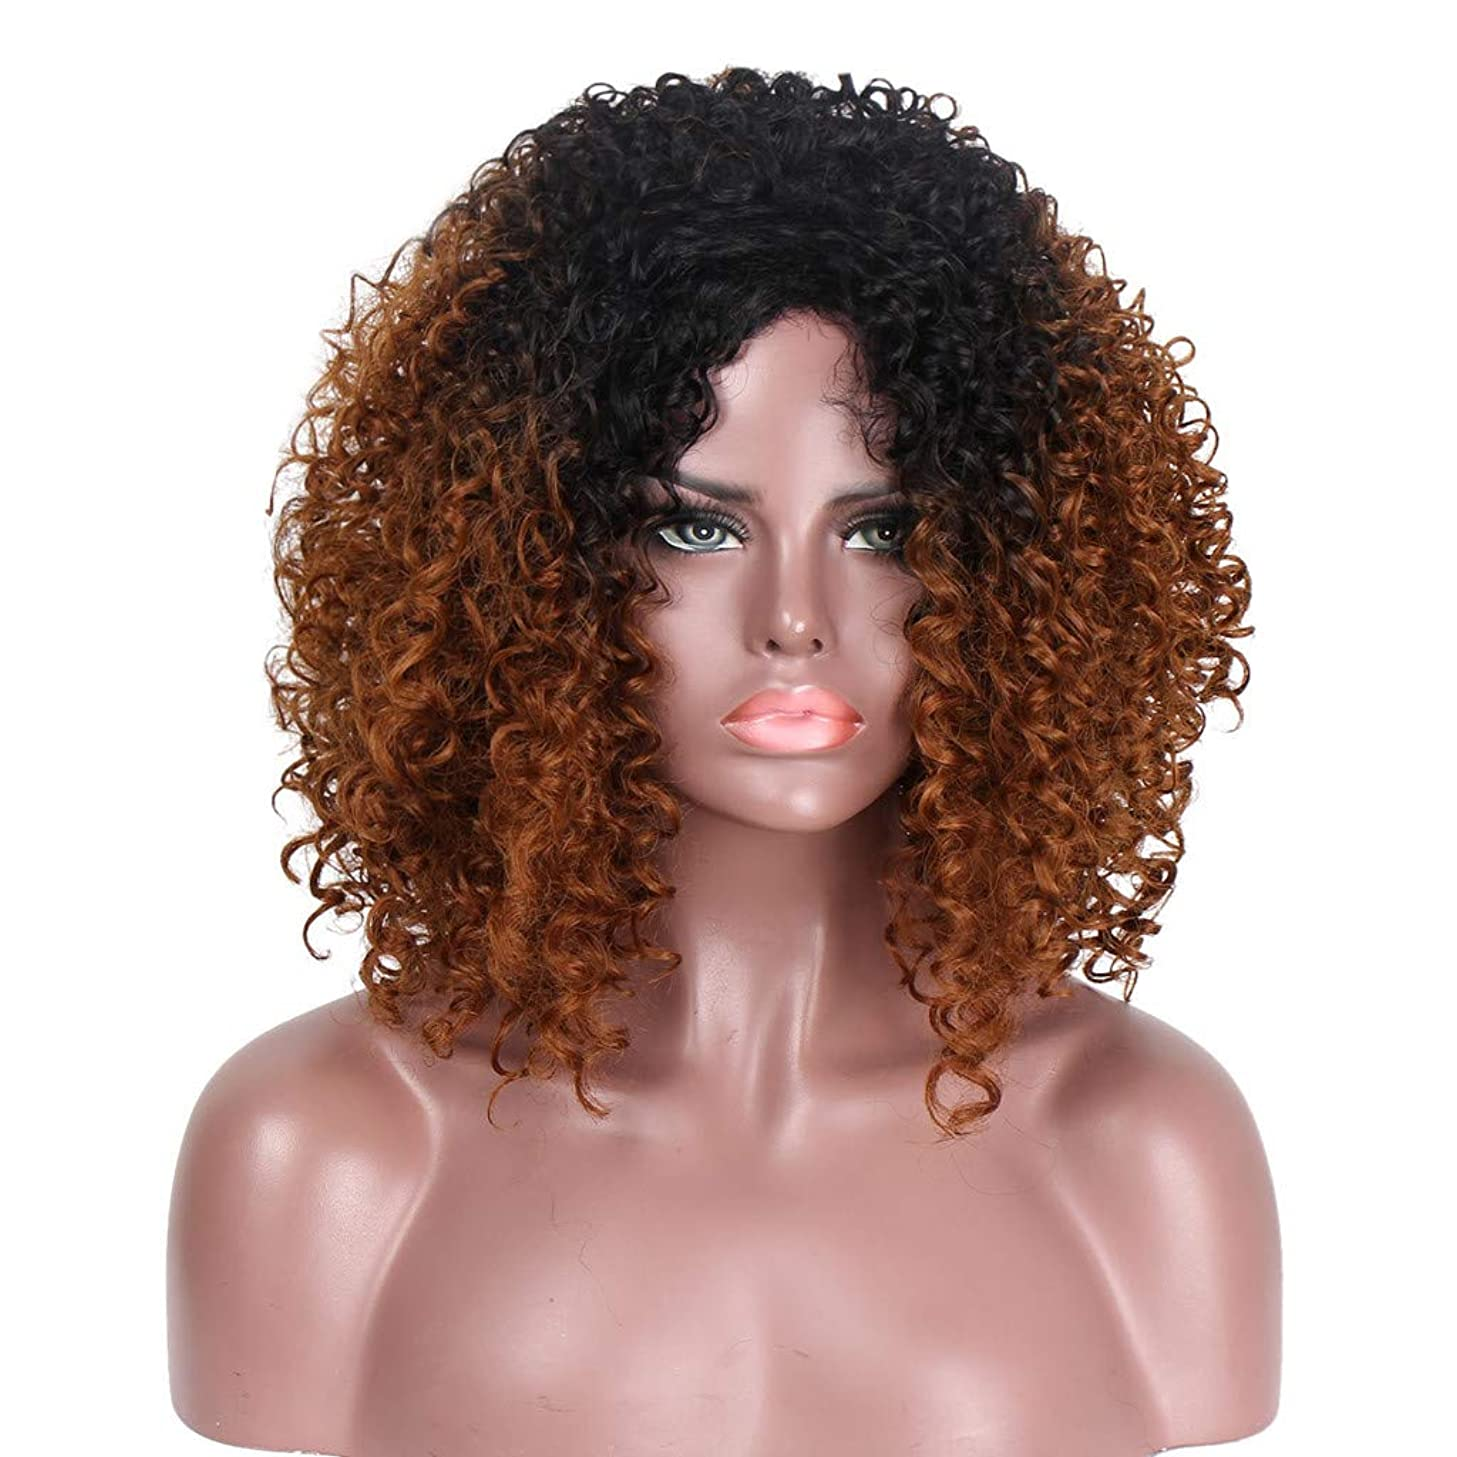 NOGOQU Natural Ombre Black to Brown Shoulder Length Deep Curly Fluffy Kinky Wig Rose Net Heat Resistant Synthetic Soft Durable for Women for 2019 17 Inch nt.wt. 280g